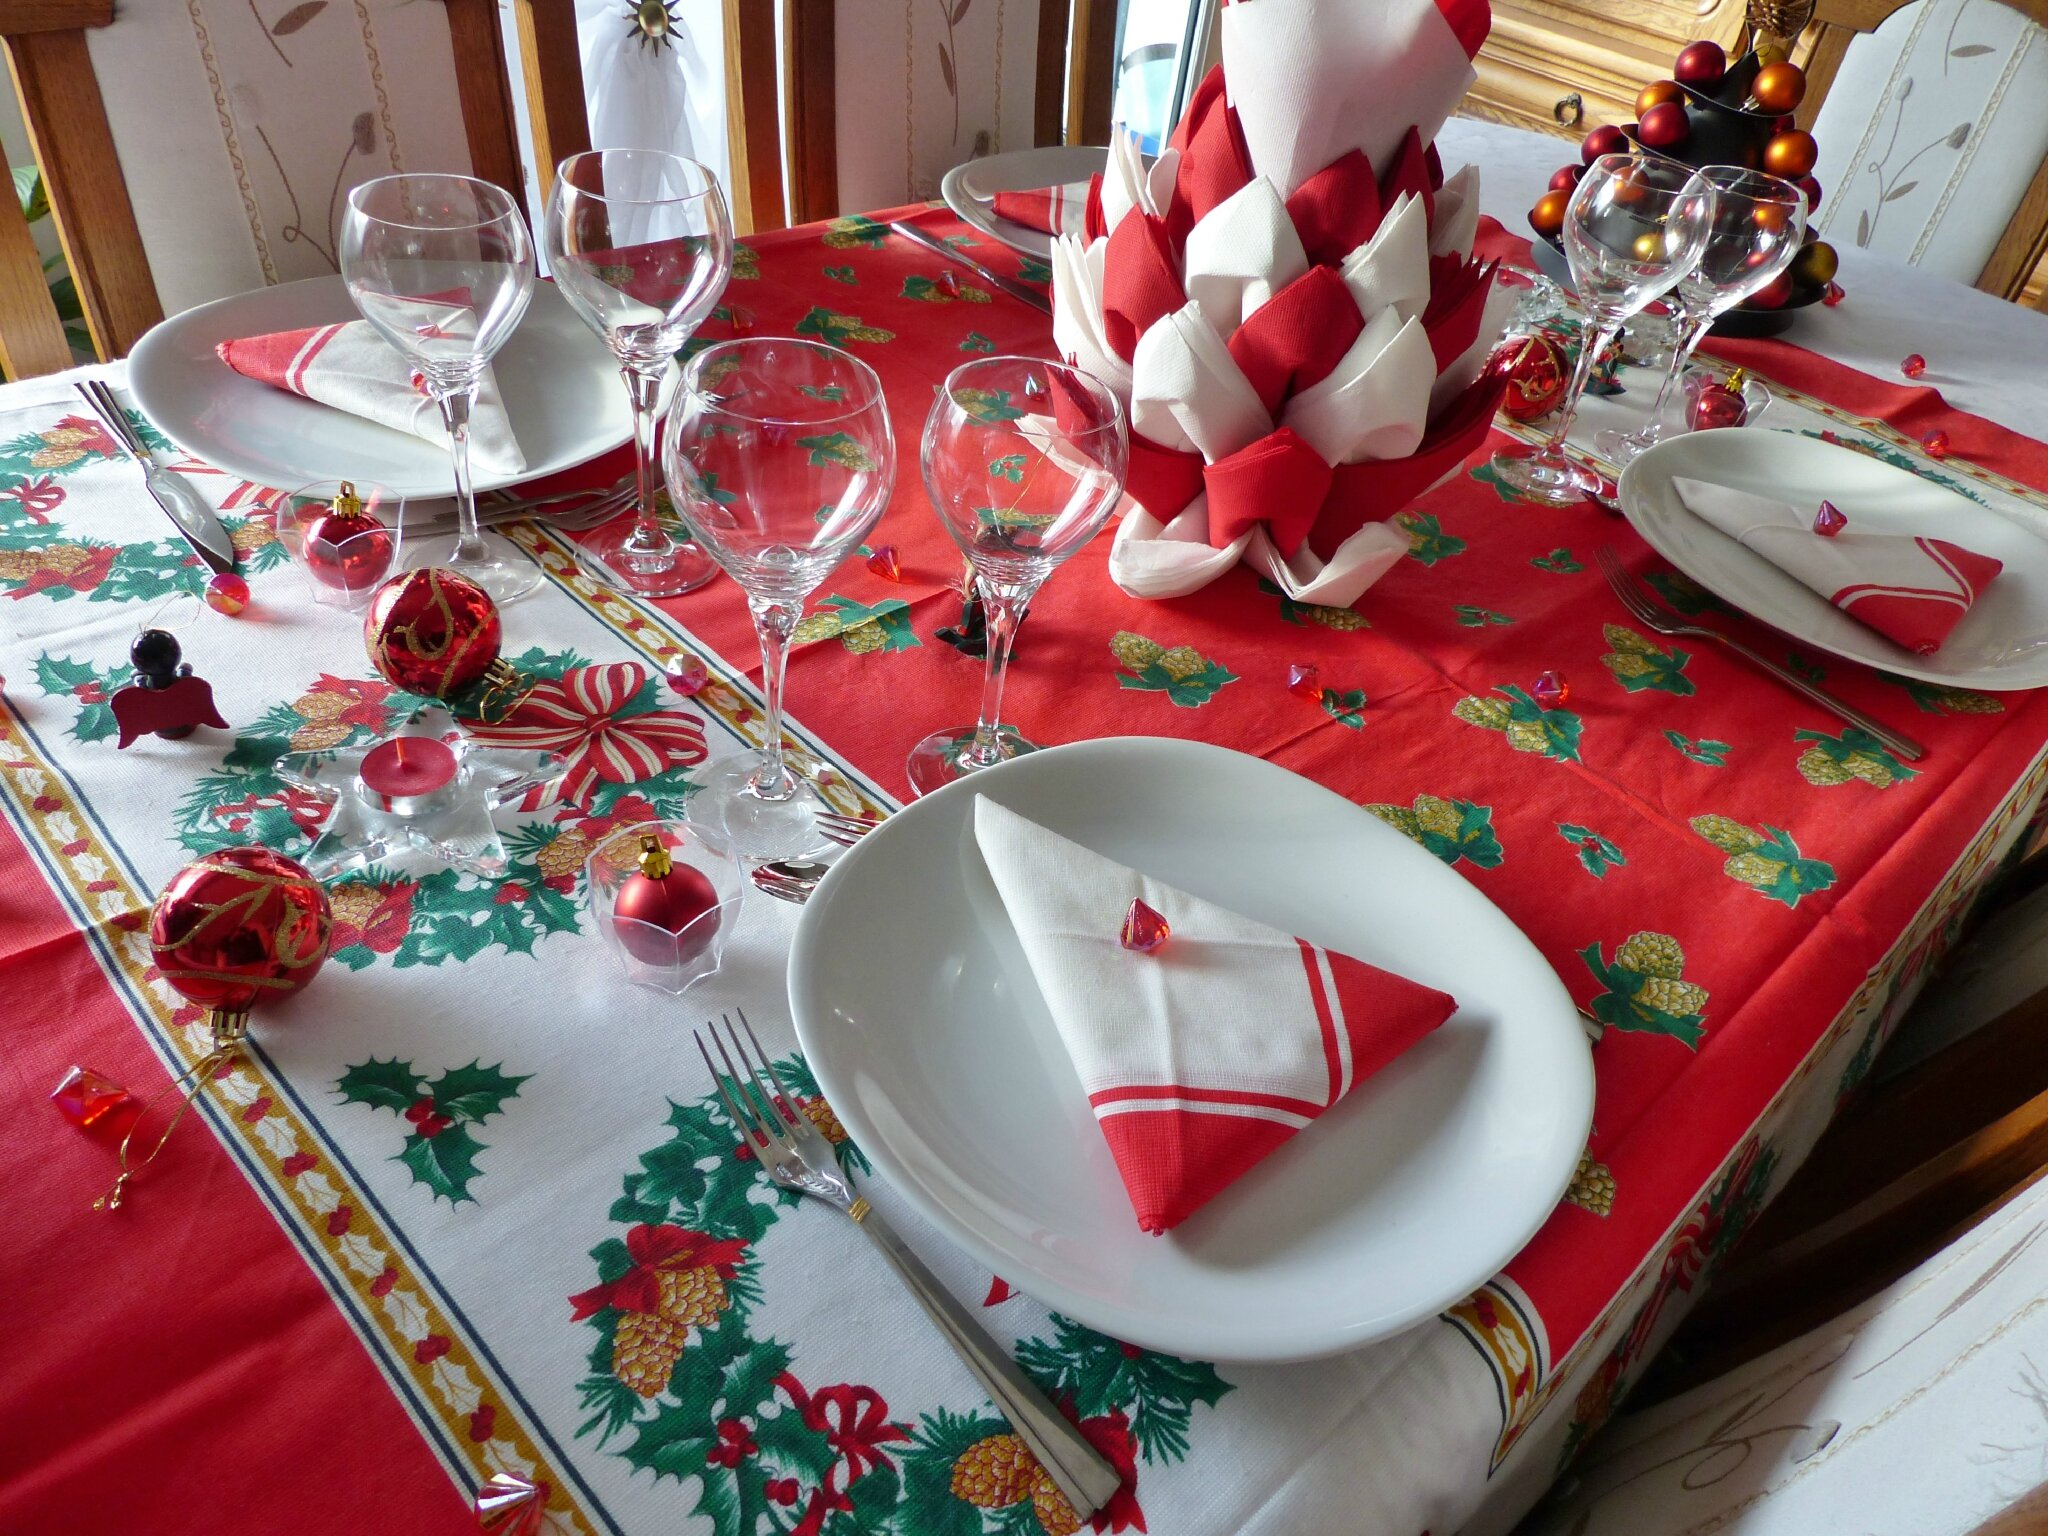 D coration de table clich d 39 un no l en rouge cuill re - Decoration table de noel or et blanc ...